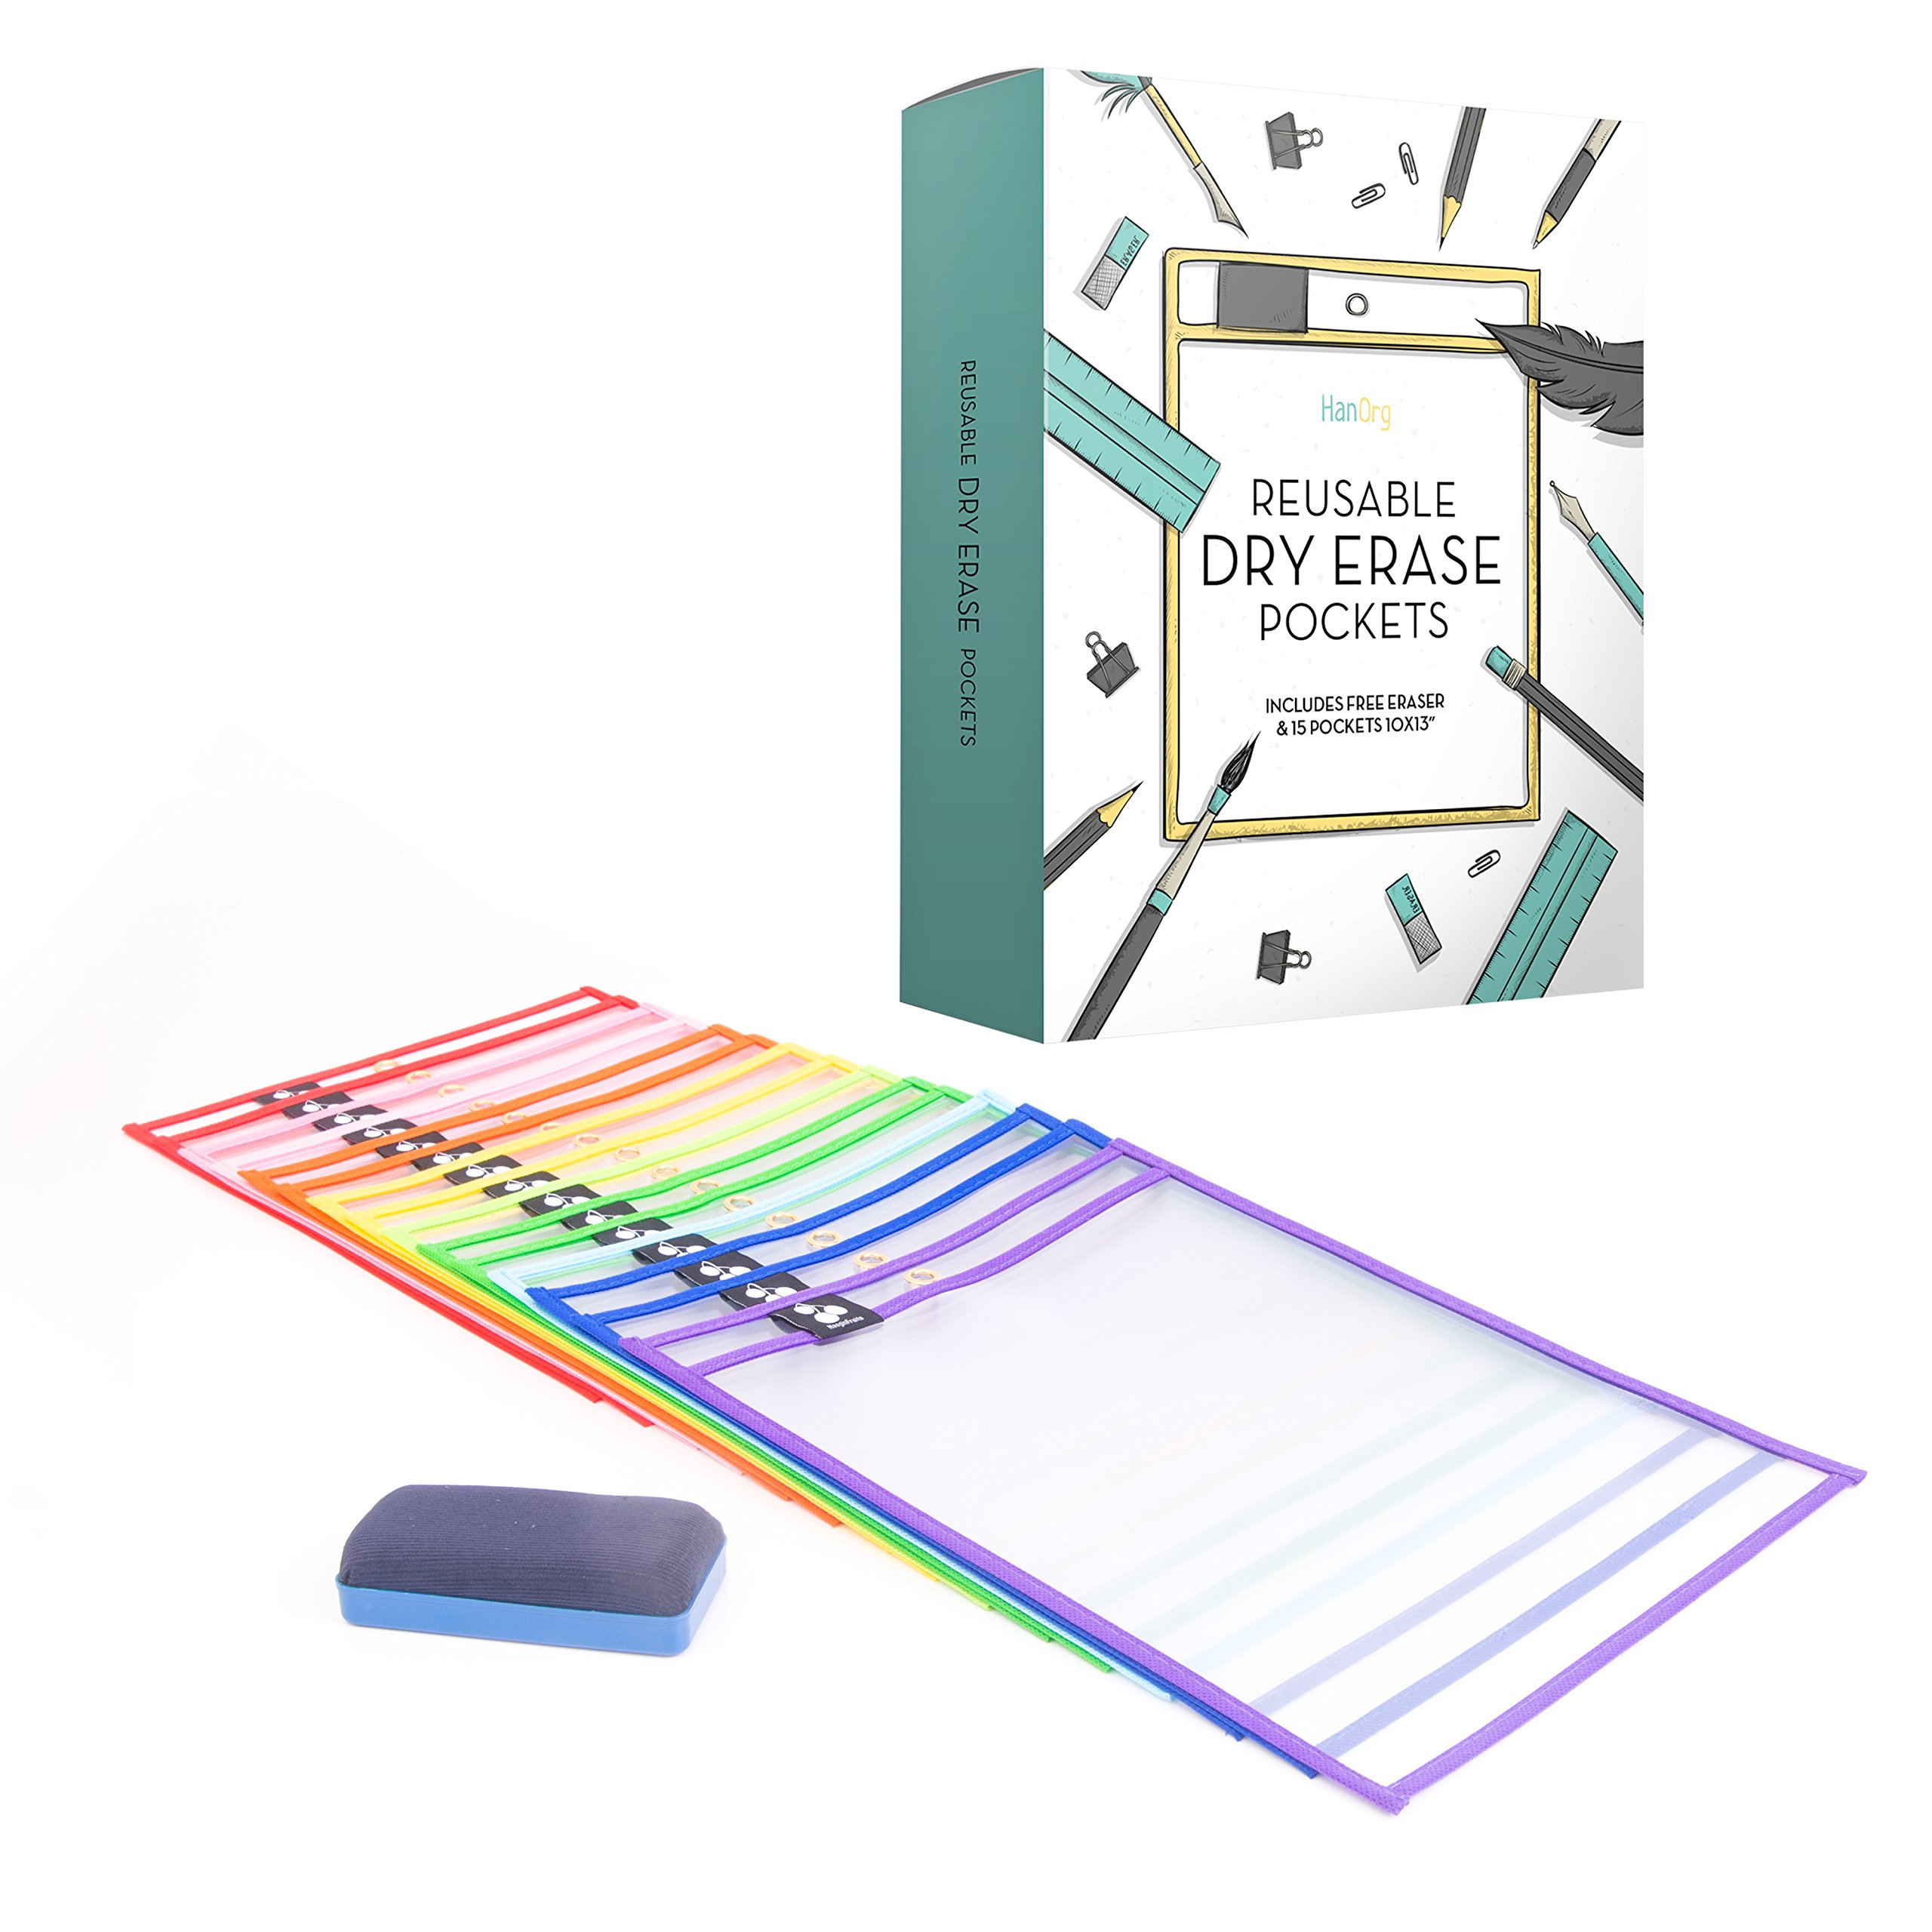 Premium Dry Erase Pockets - 10'' x 13'' Oversized Reusable Document Sleeves - Many Different Colors - Top Quality Supplies For Your Office, School, Classroom, Children & More (Pack of 15)